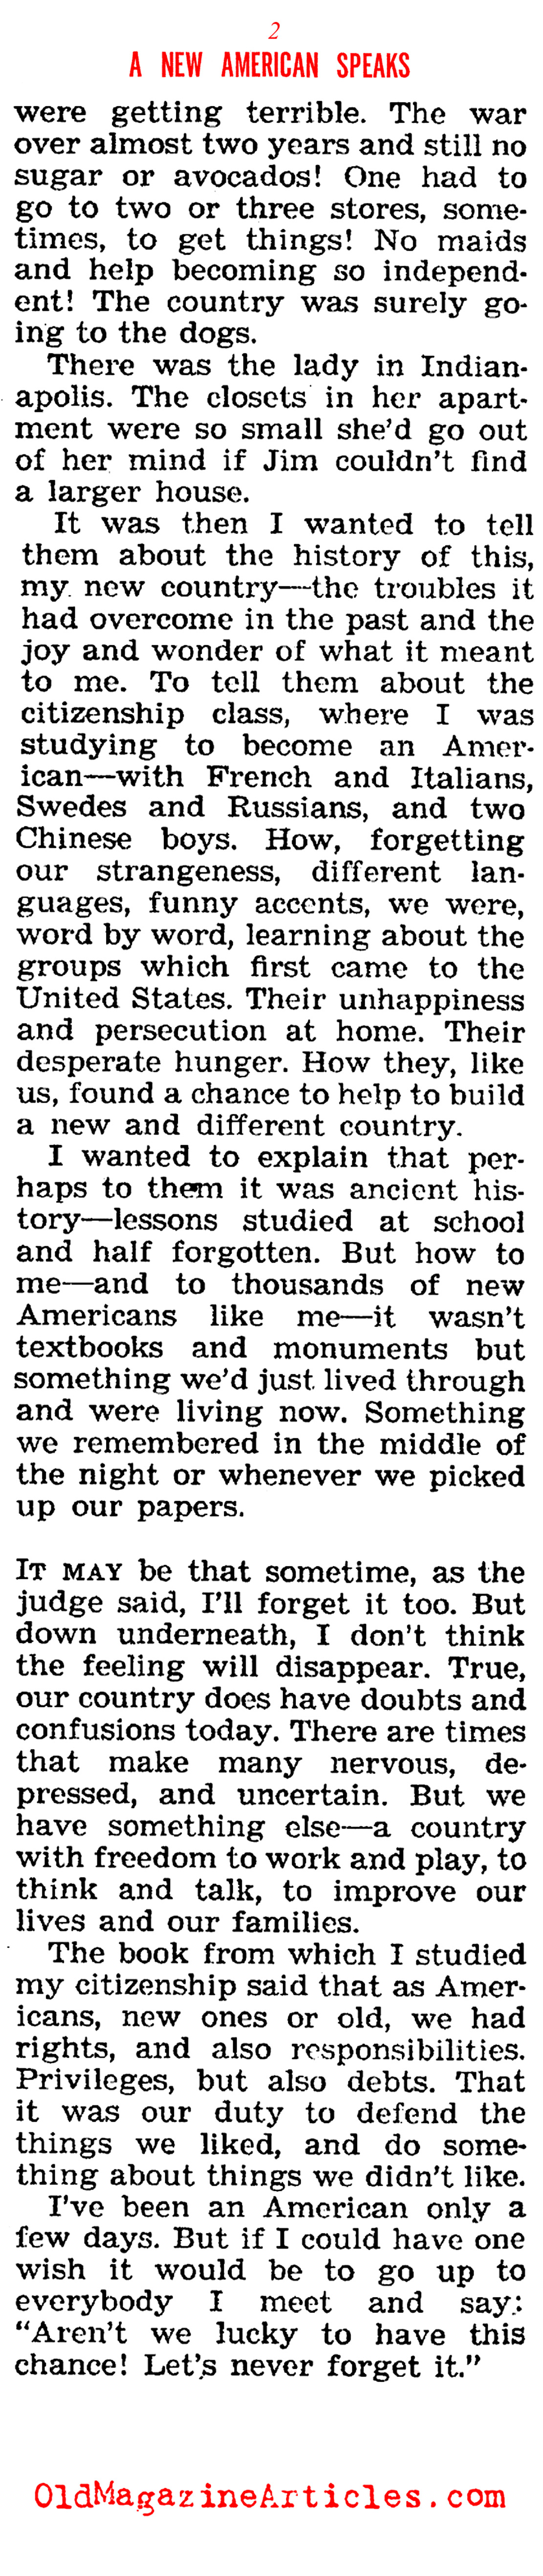 A Grateful Immigrant Speaks ('47 Magazine, 1947)